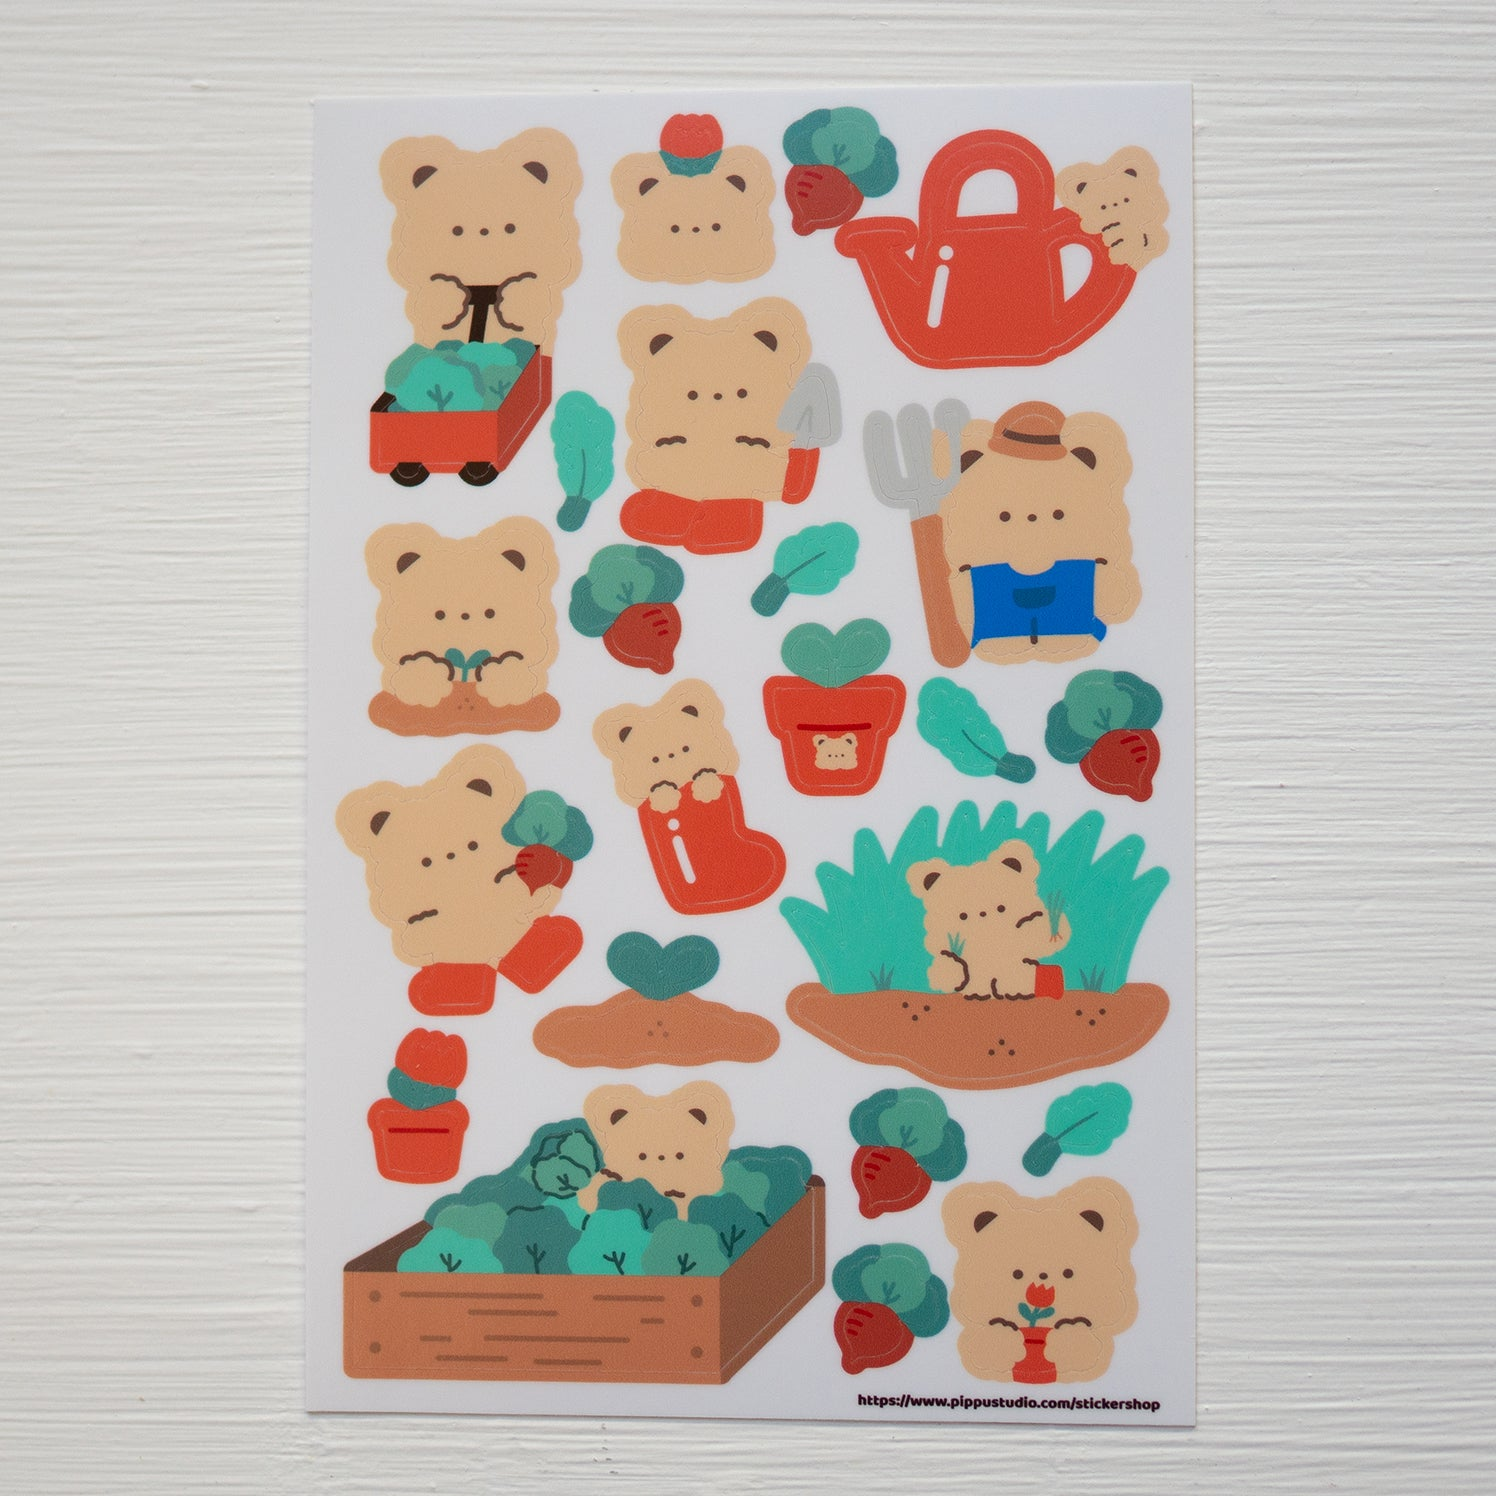 A86-Gardening sticker sheet